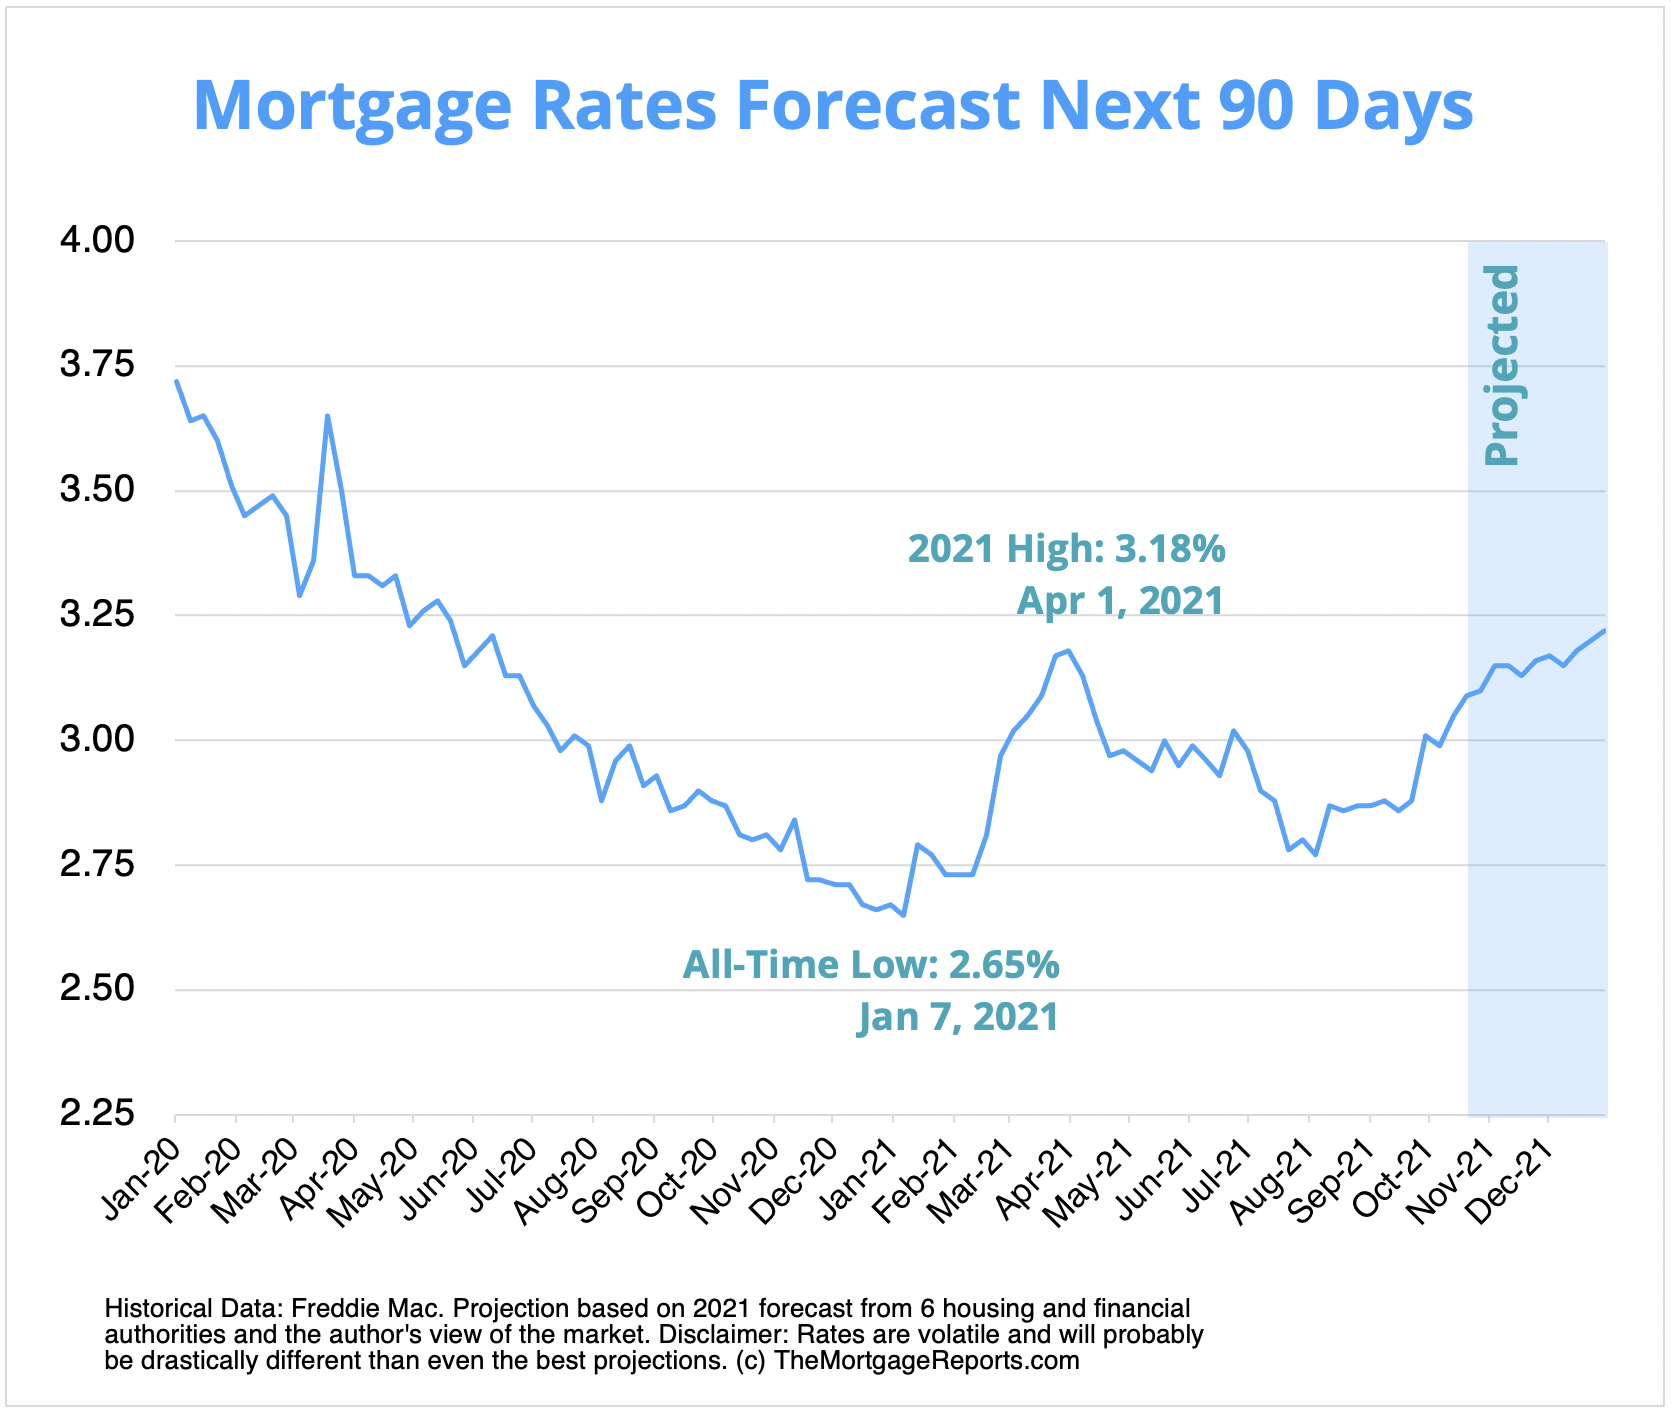 Mortgage rates chart showing mortgage rate predictions for November to December 2021